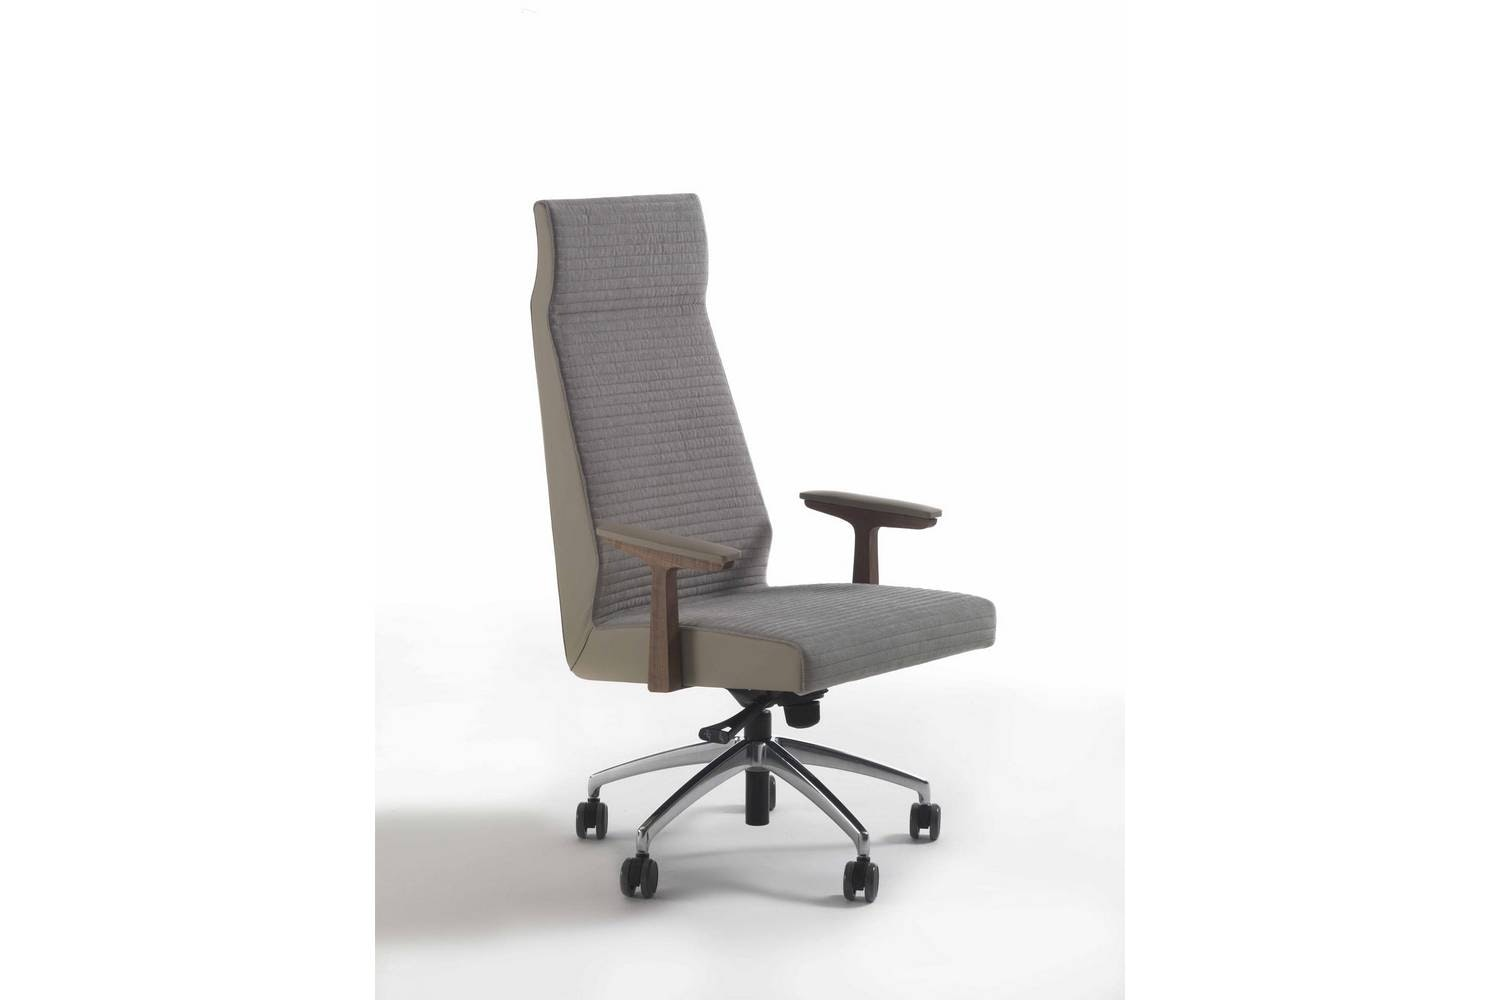 Elis Swivel Chair by Umberto Asnago for Porada